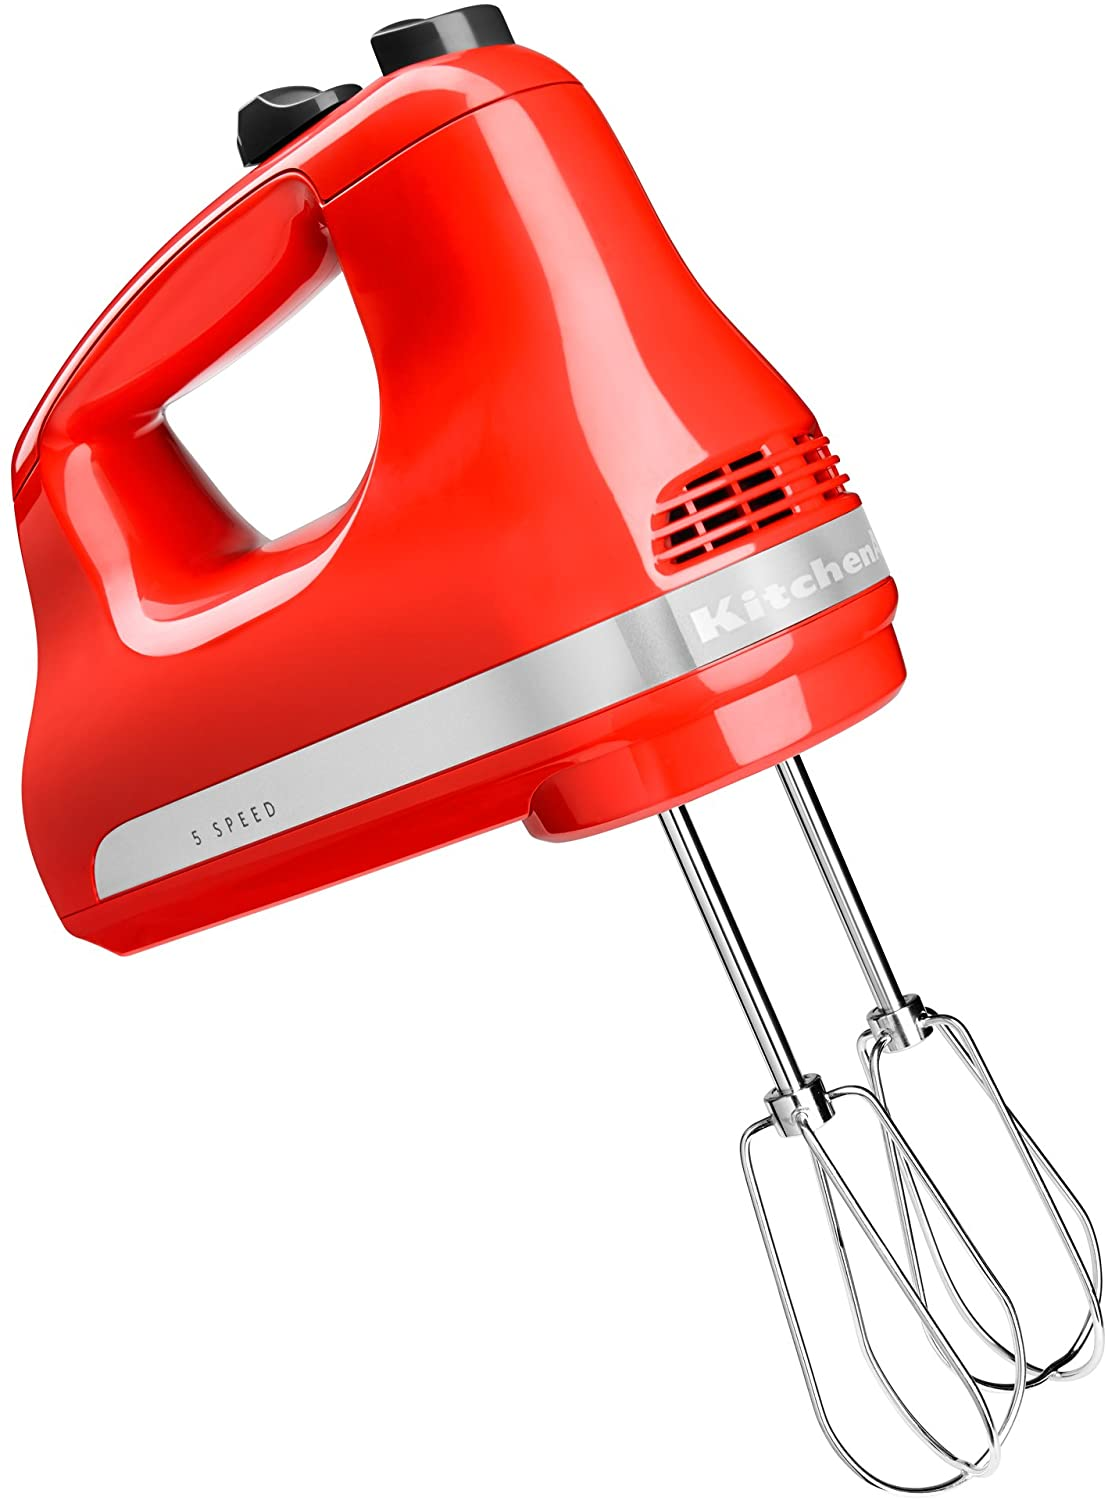 KitchenAid 5-speed hand mixer in bright red